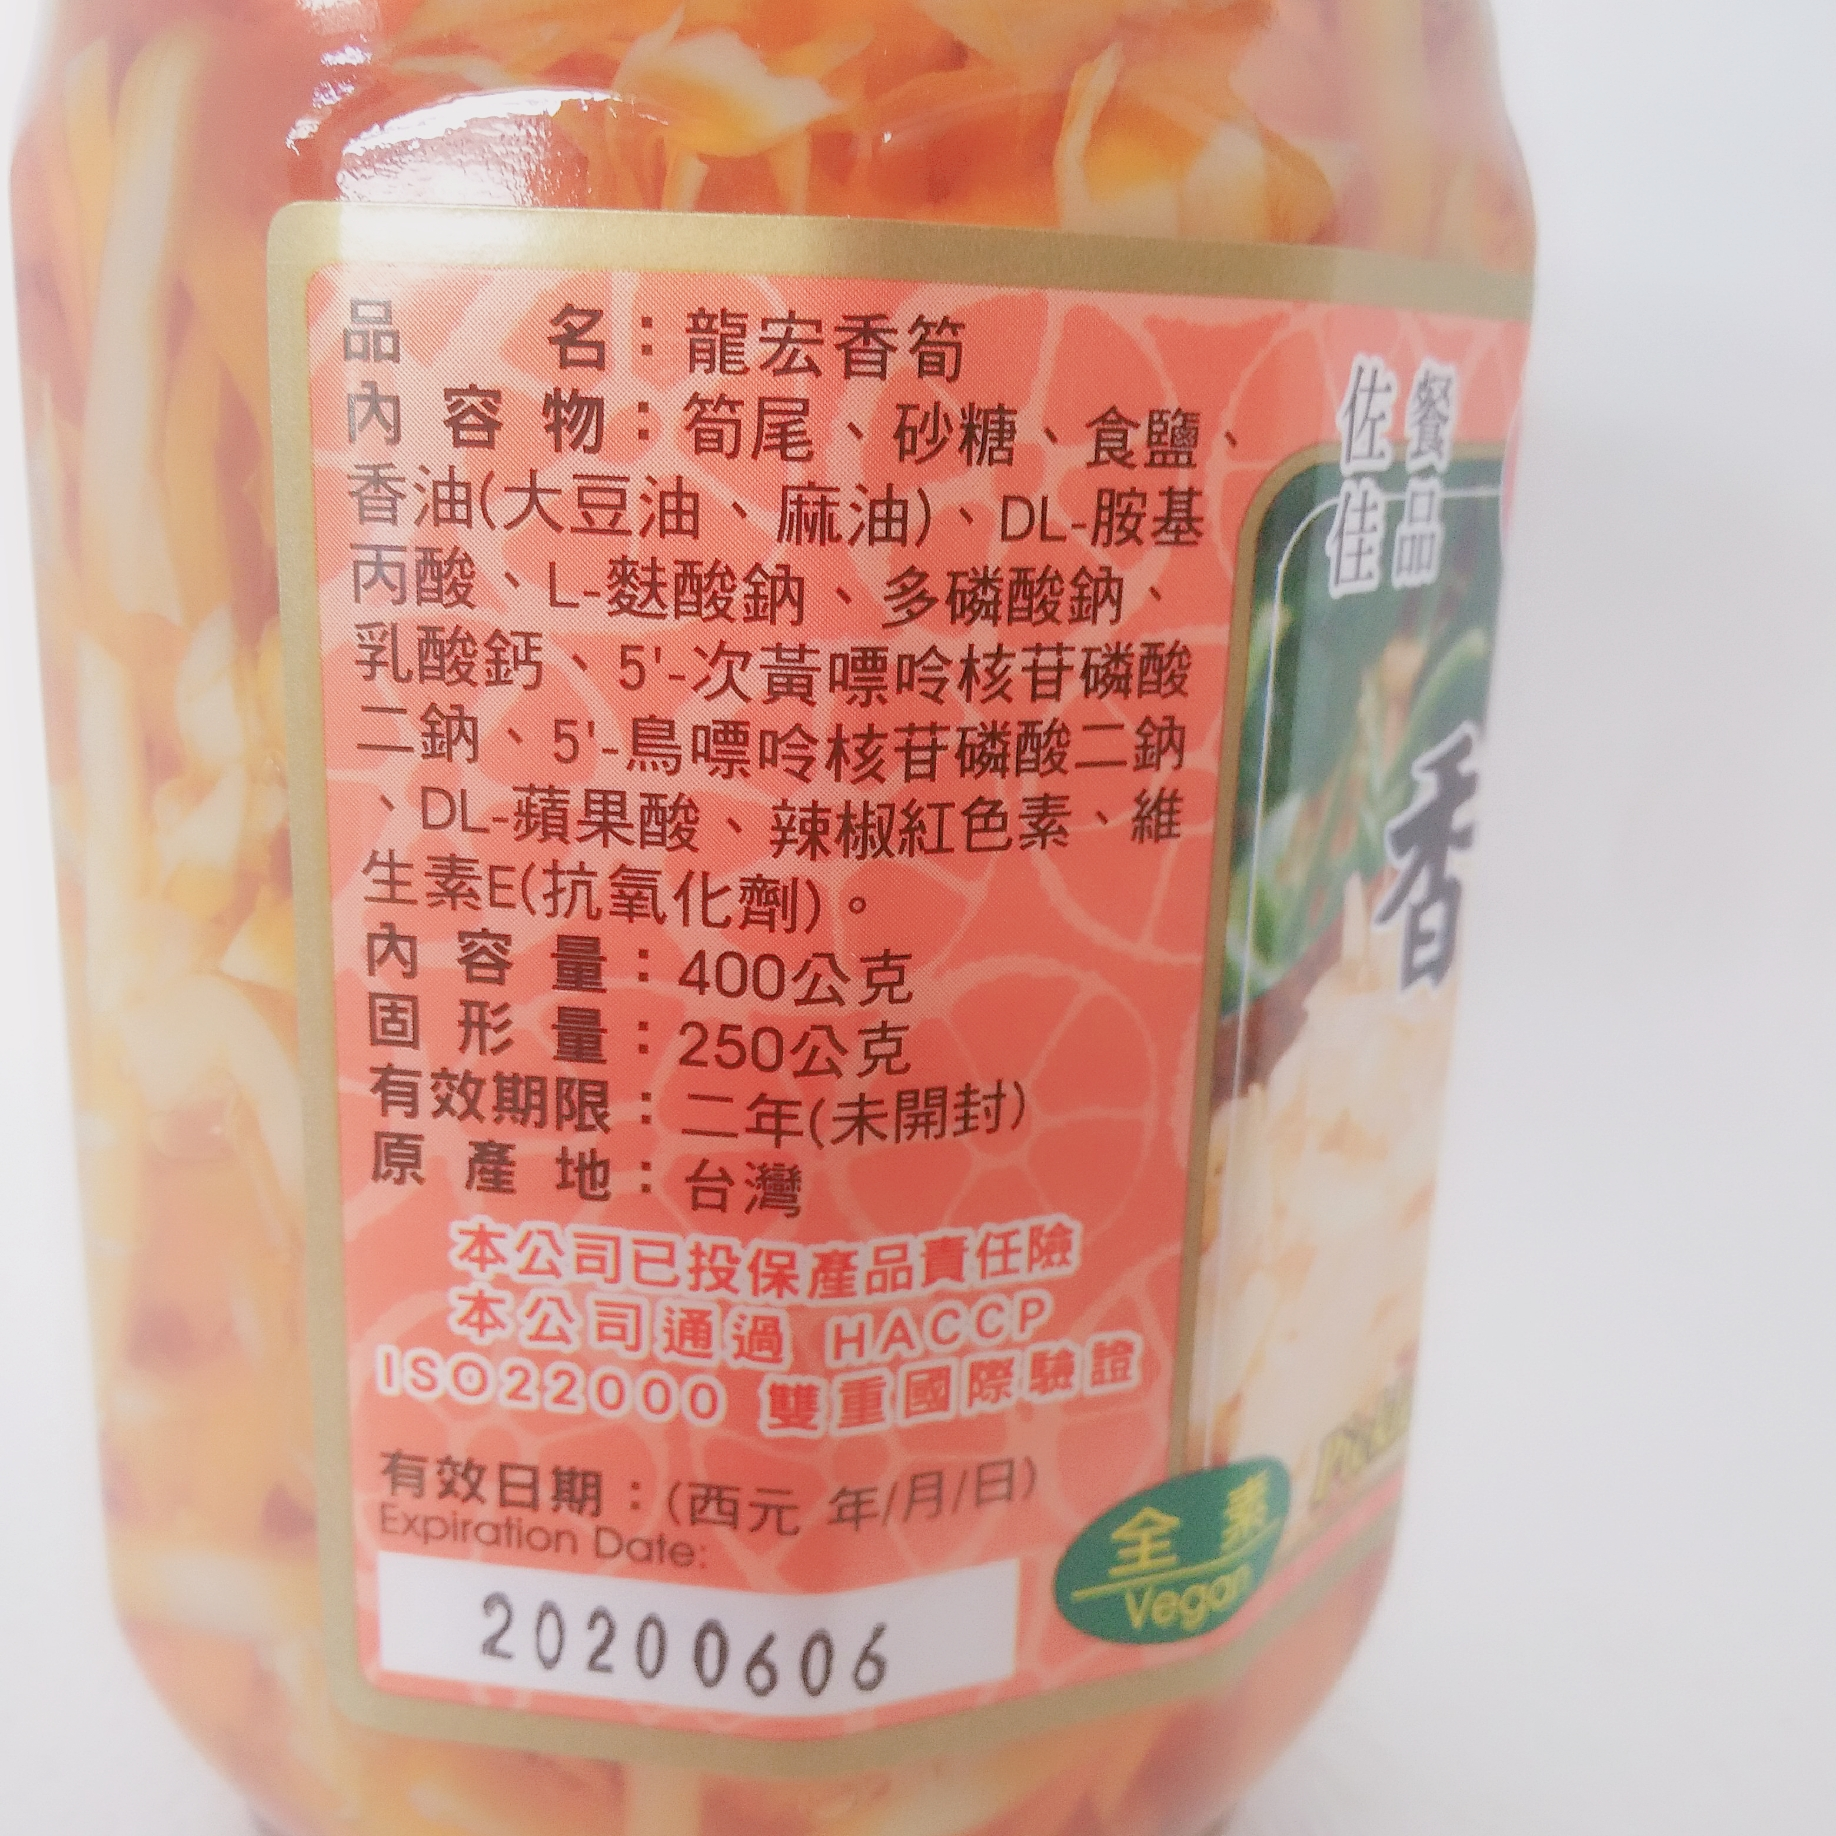 Image LH Bamboo Shoots 龍宏 - 香筍 400grams